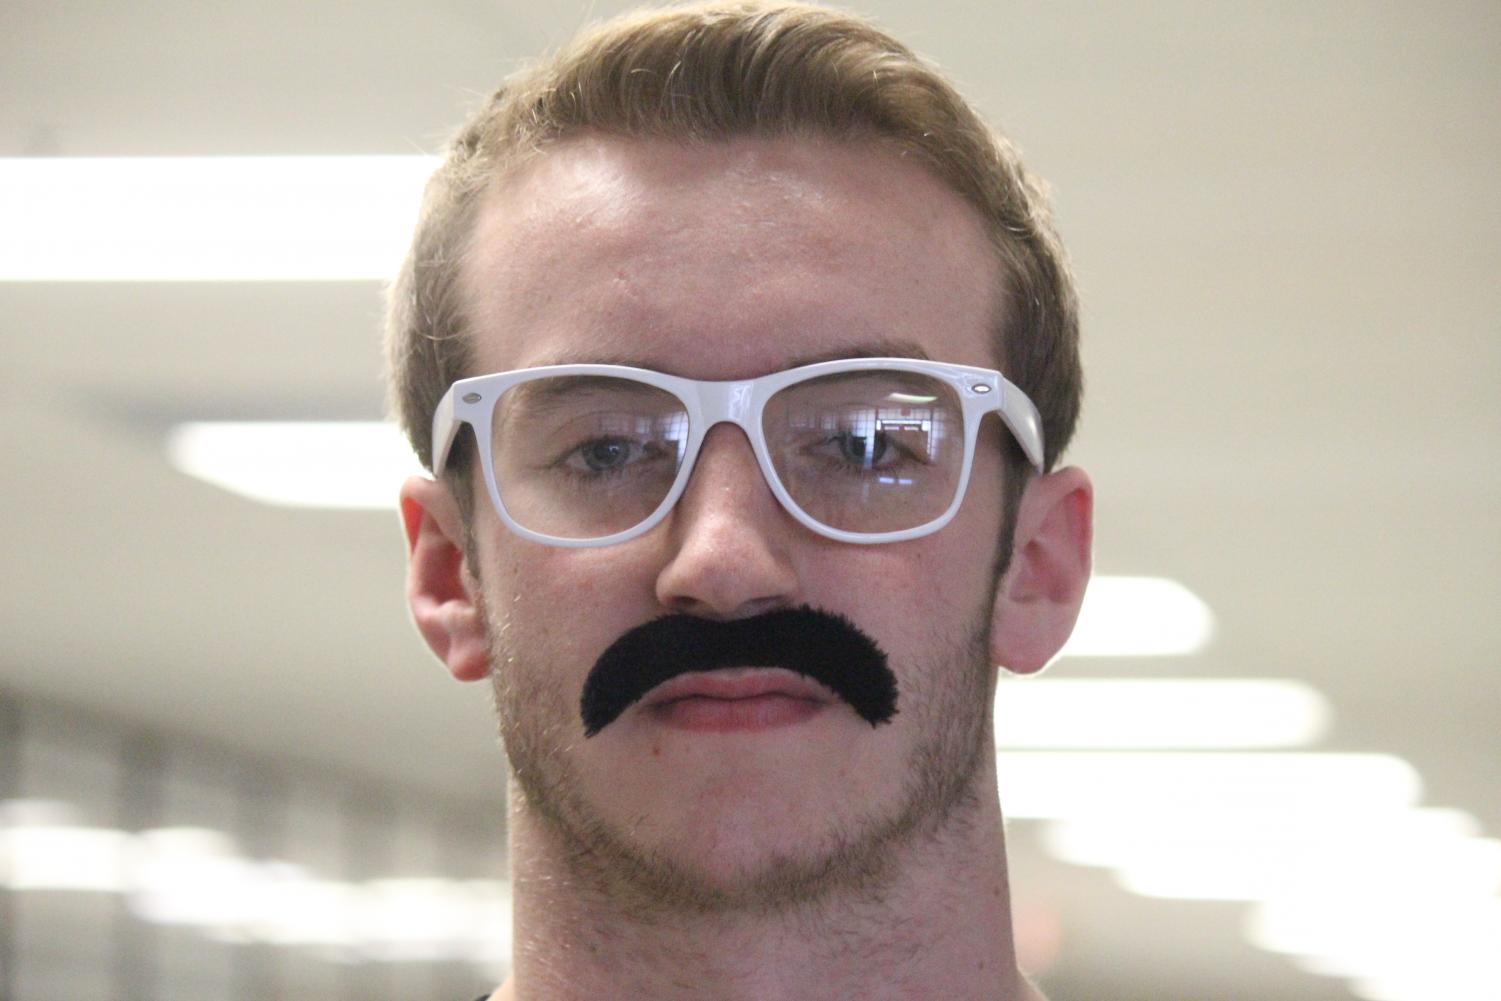 A mustache and glasses aren't the only things people hide behind.